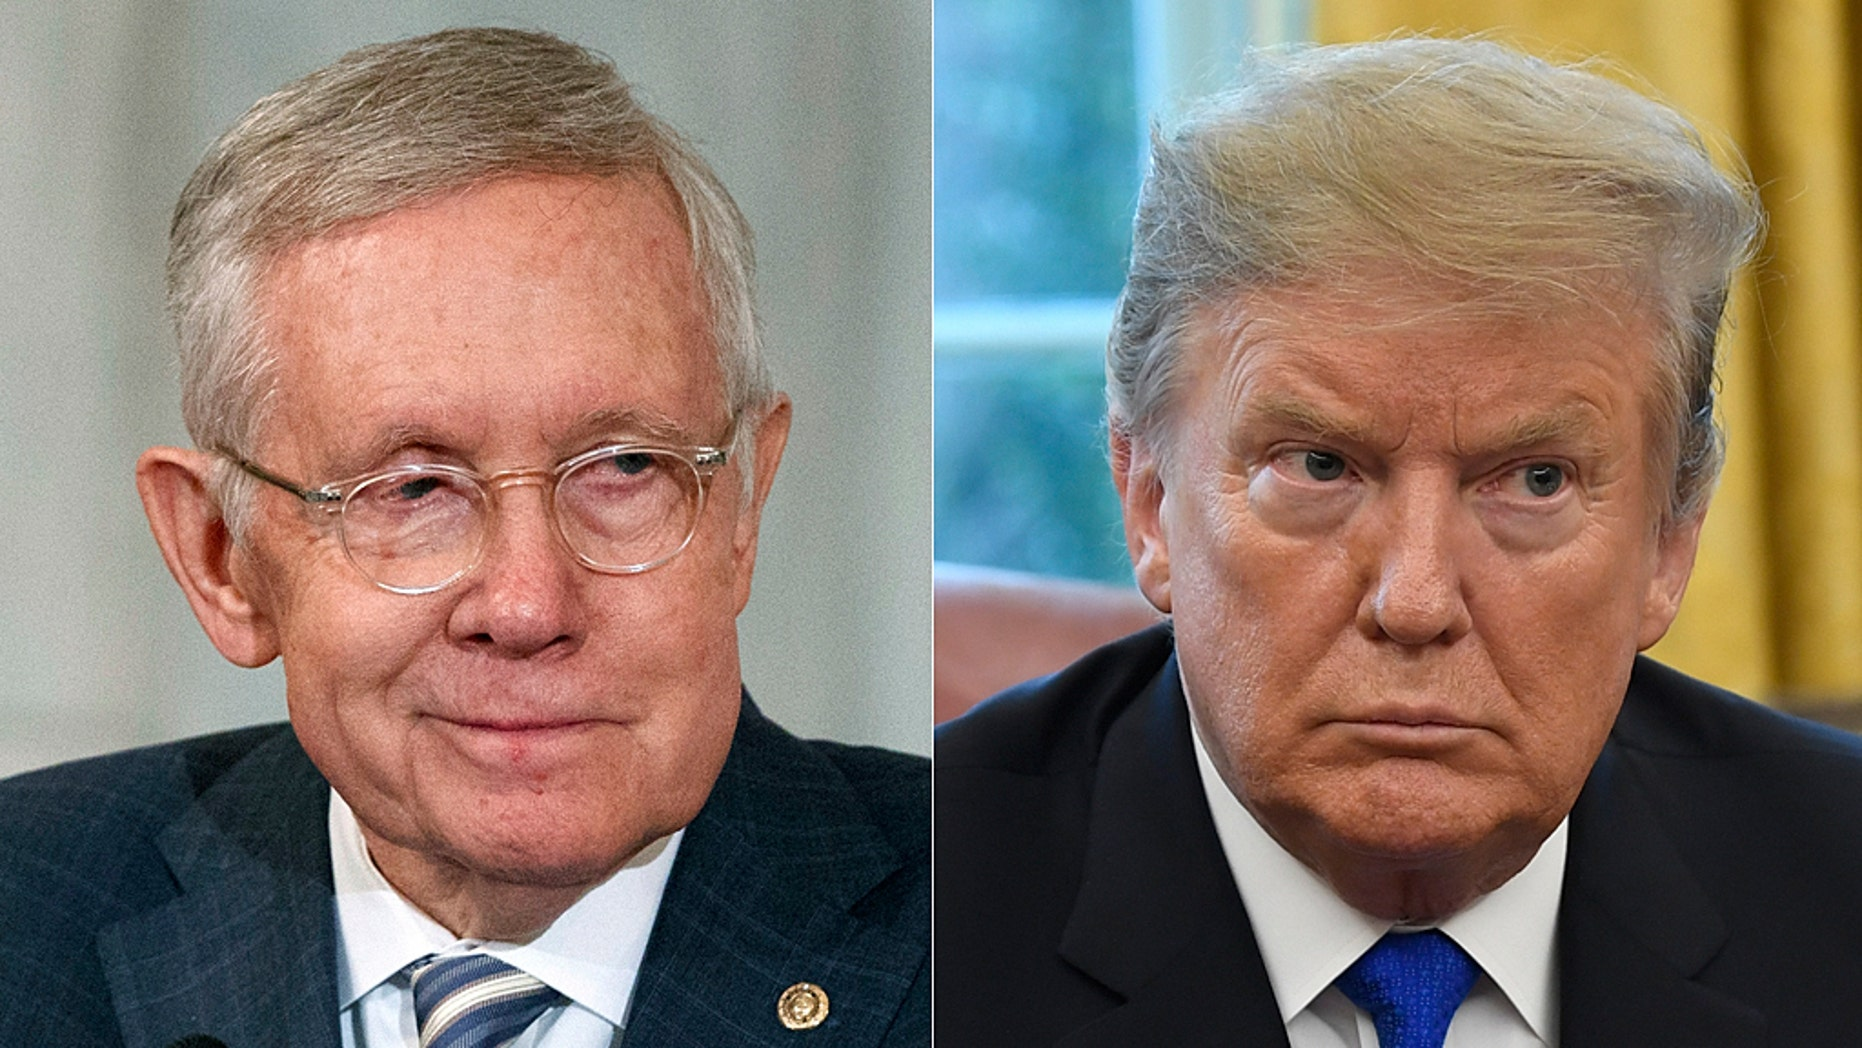 Harry Reid (left) delivered a scathing attack on President Donald Trump in a new interview